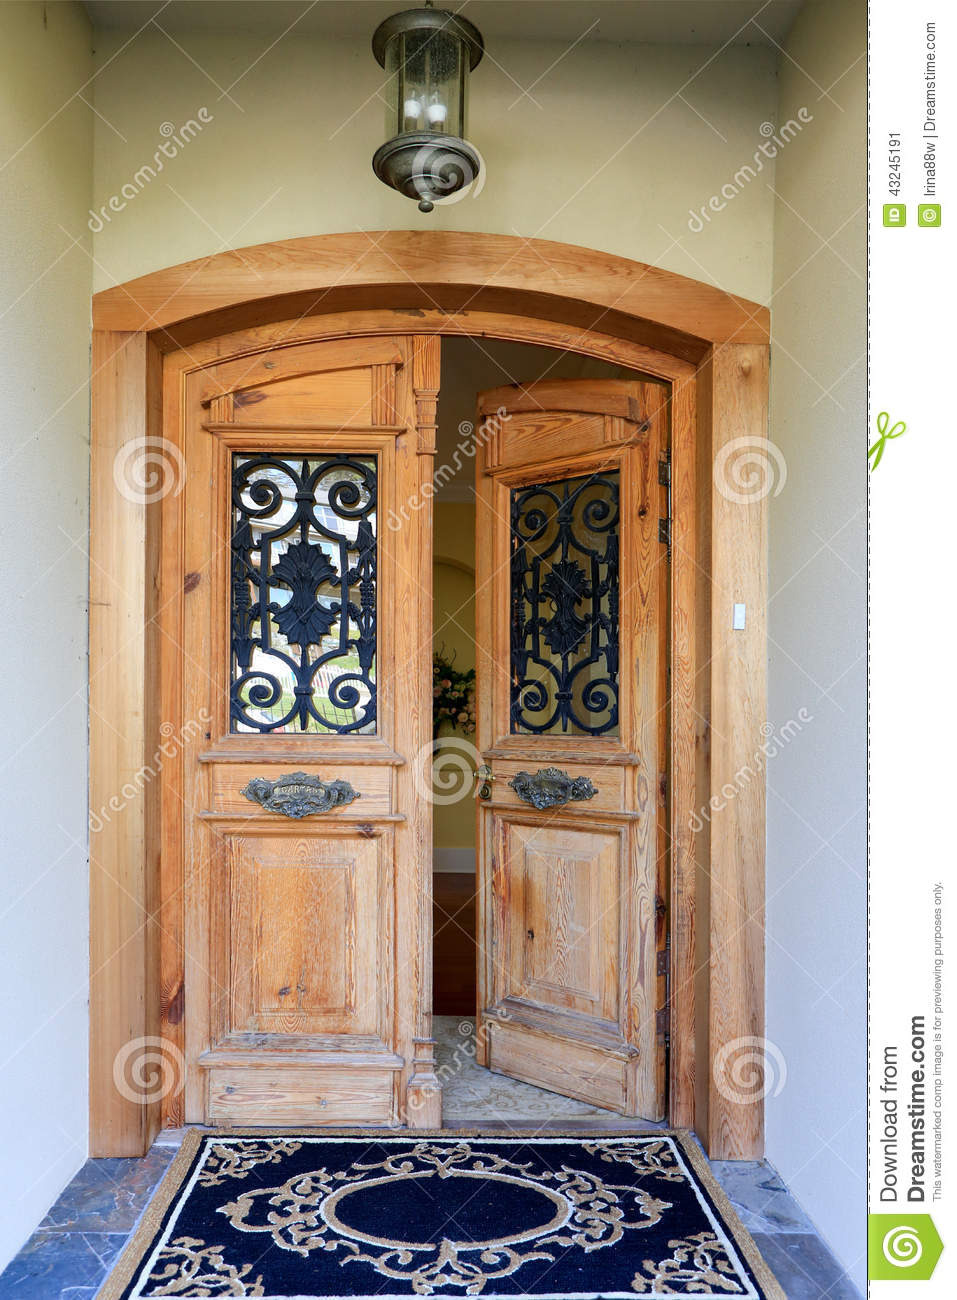 luxury house entrance porch open door wooden wrought iron details